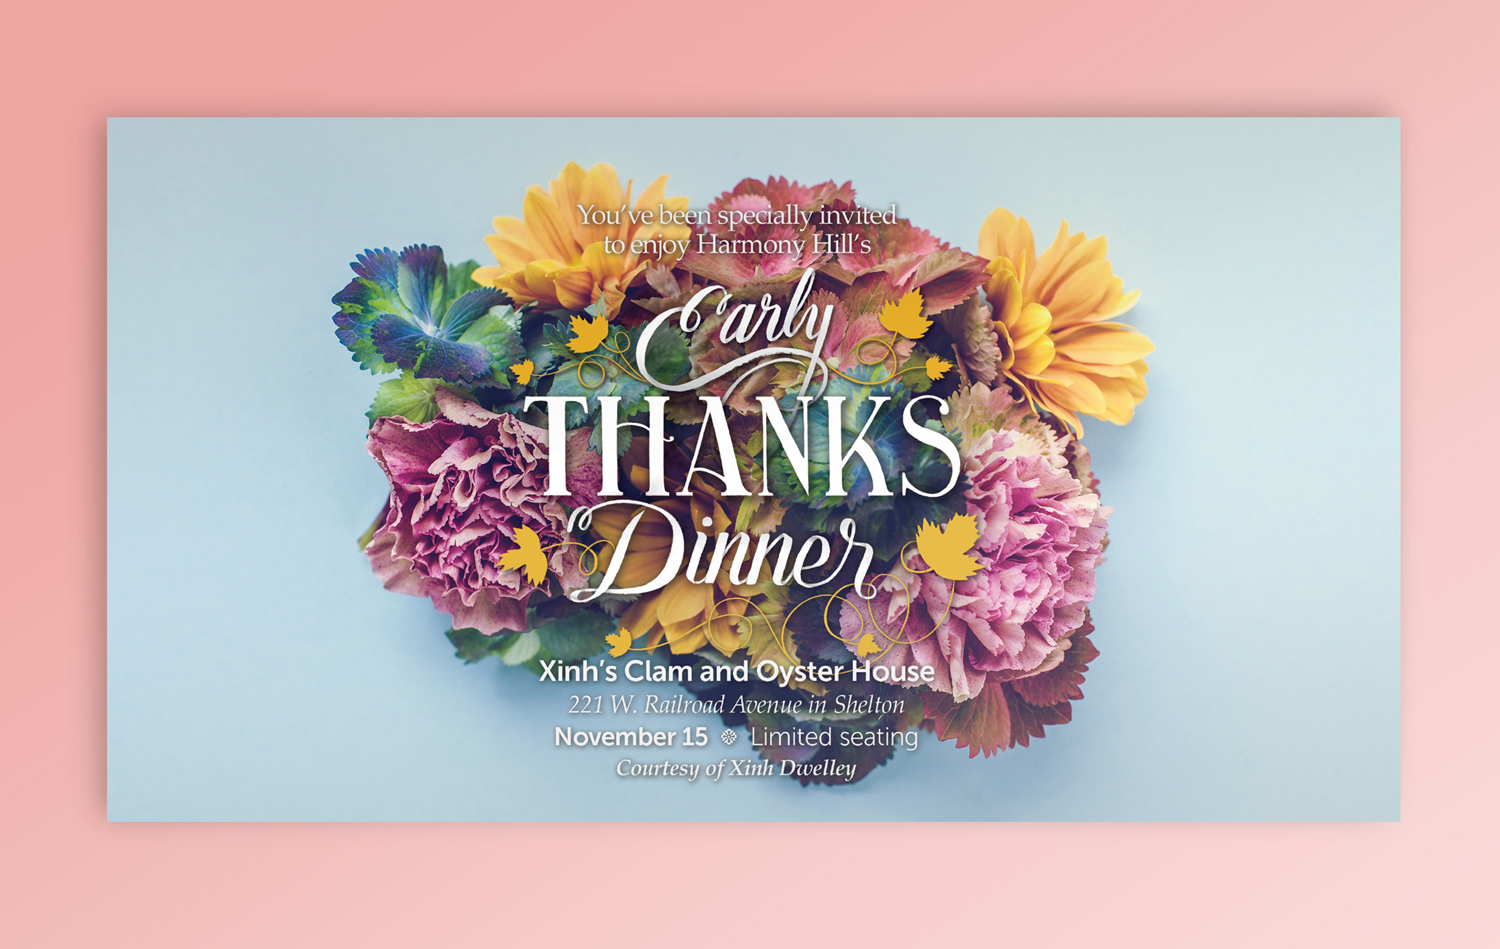 Invitation for Harmony Hill's Early Thanks Dinner